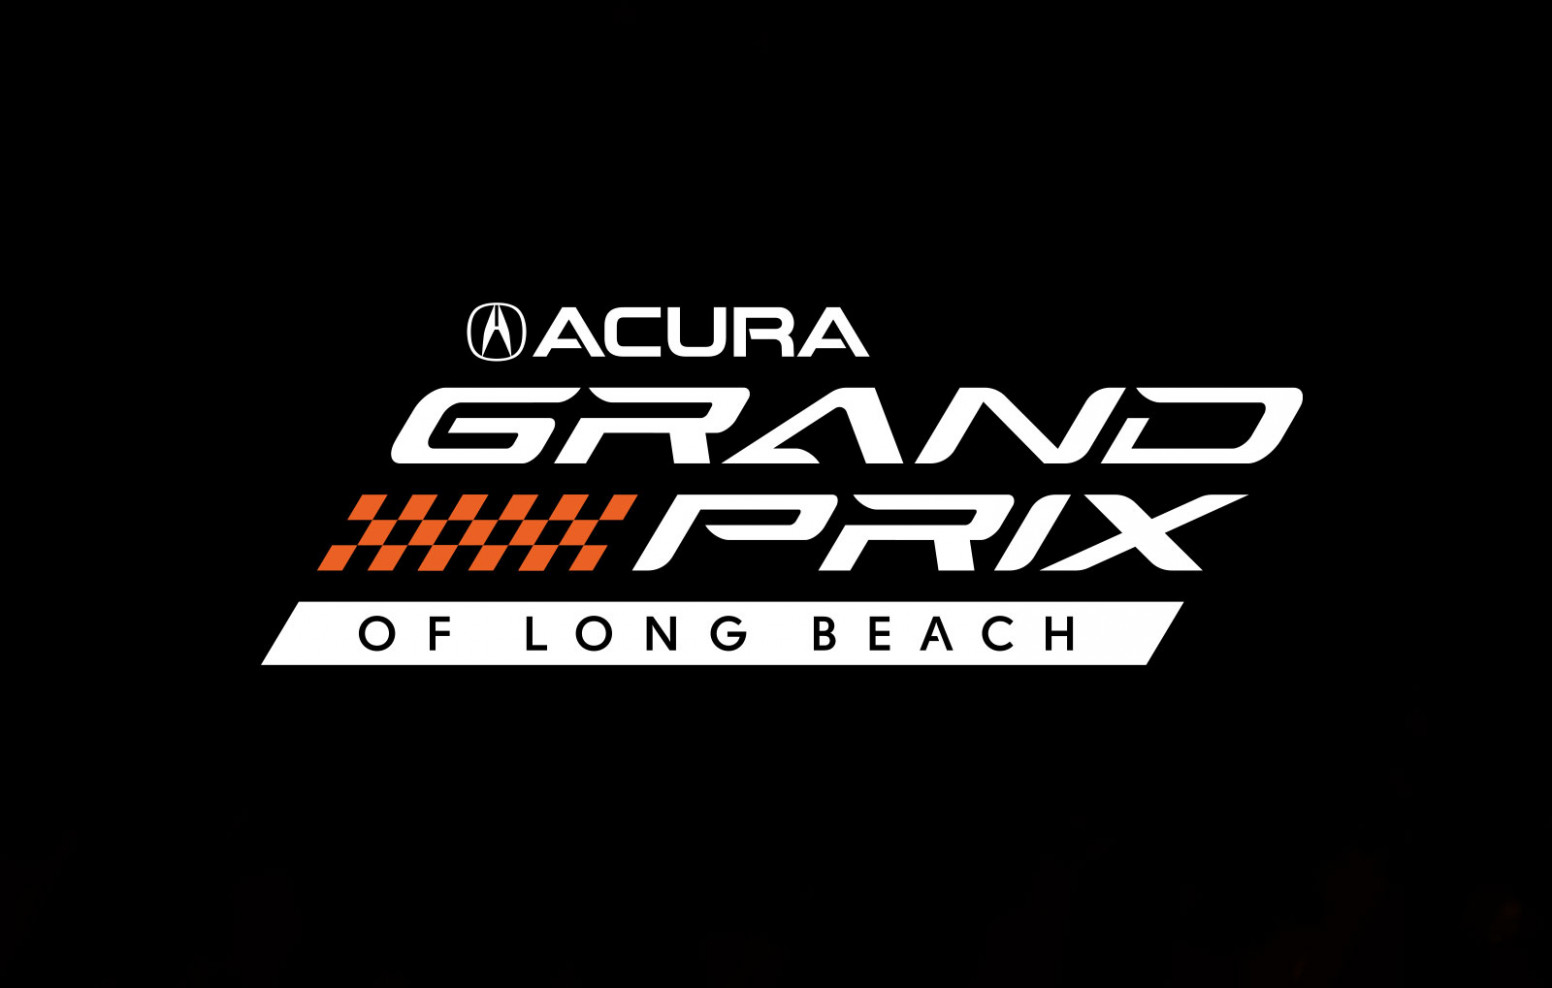 10 Acura Grand Prix Cancelled; Ticket Credit/Refund Policy ..